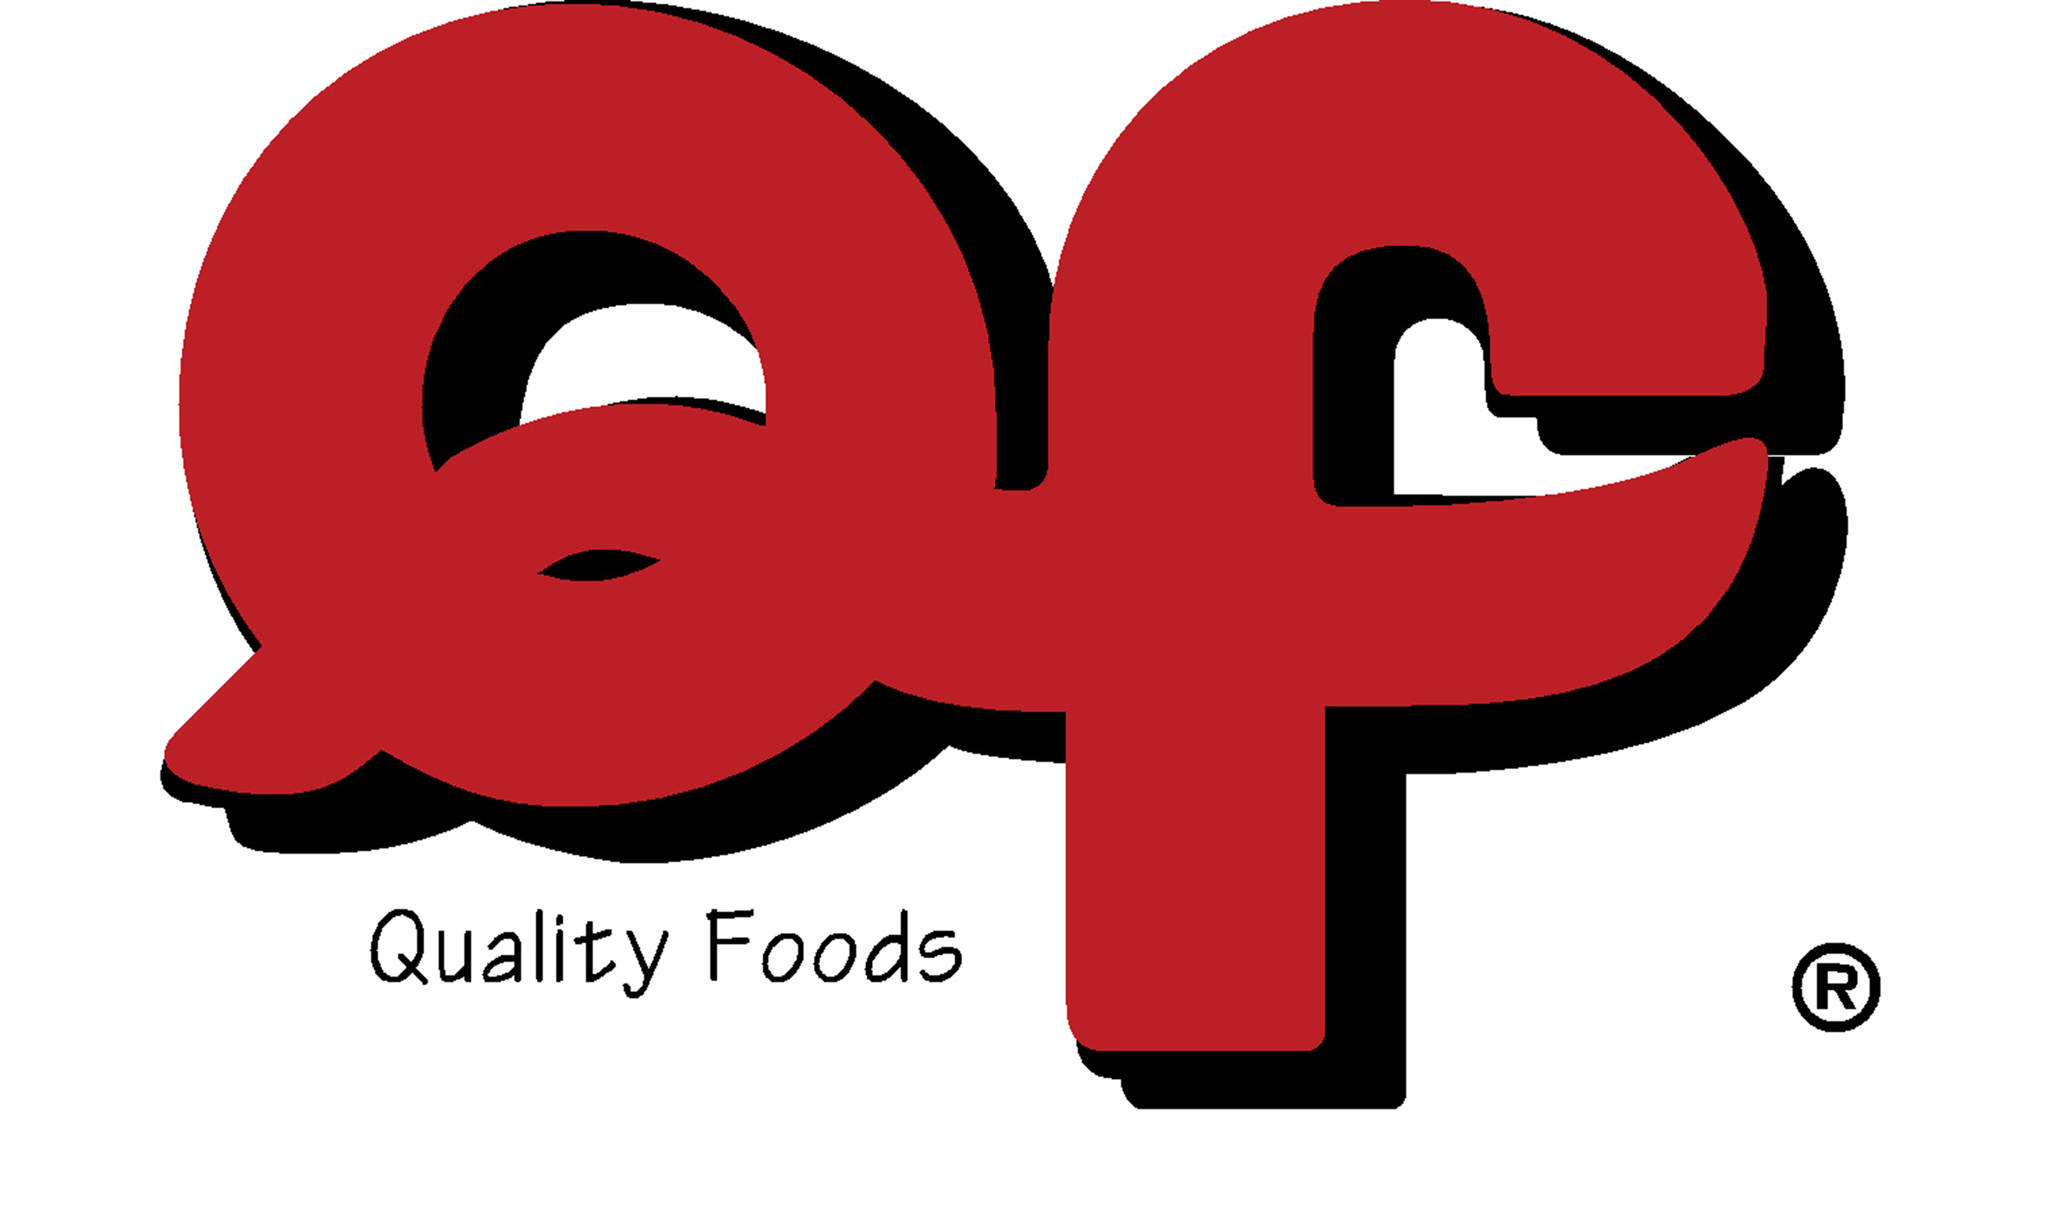 Quality Foods plans to use electric trucks to help reduce its environmental footprint. (Quality Foods logo)